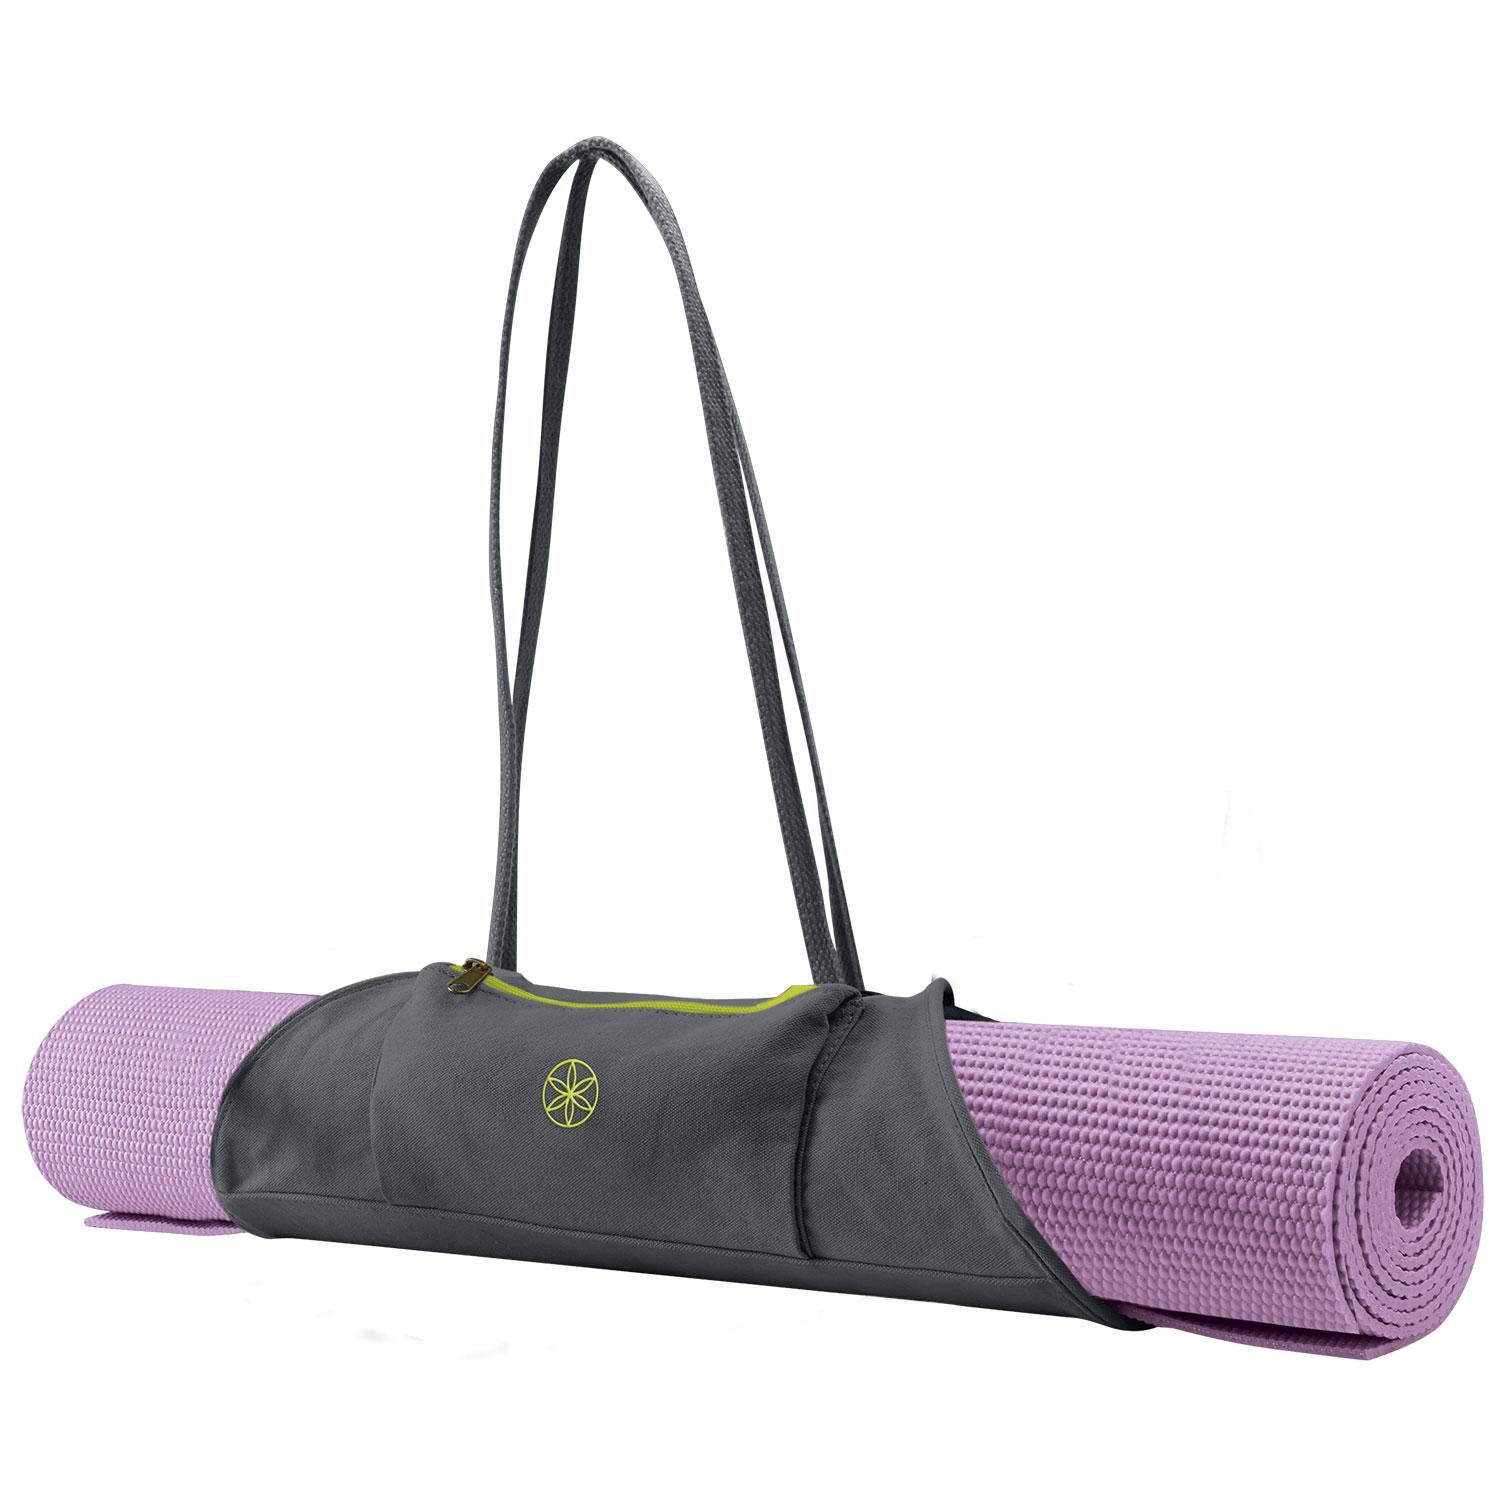 Amazon.com : Gaiam On-The-Go Yoga Mat Carrier, Citron